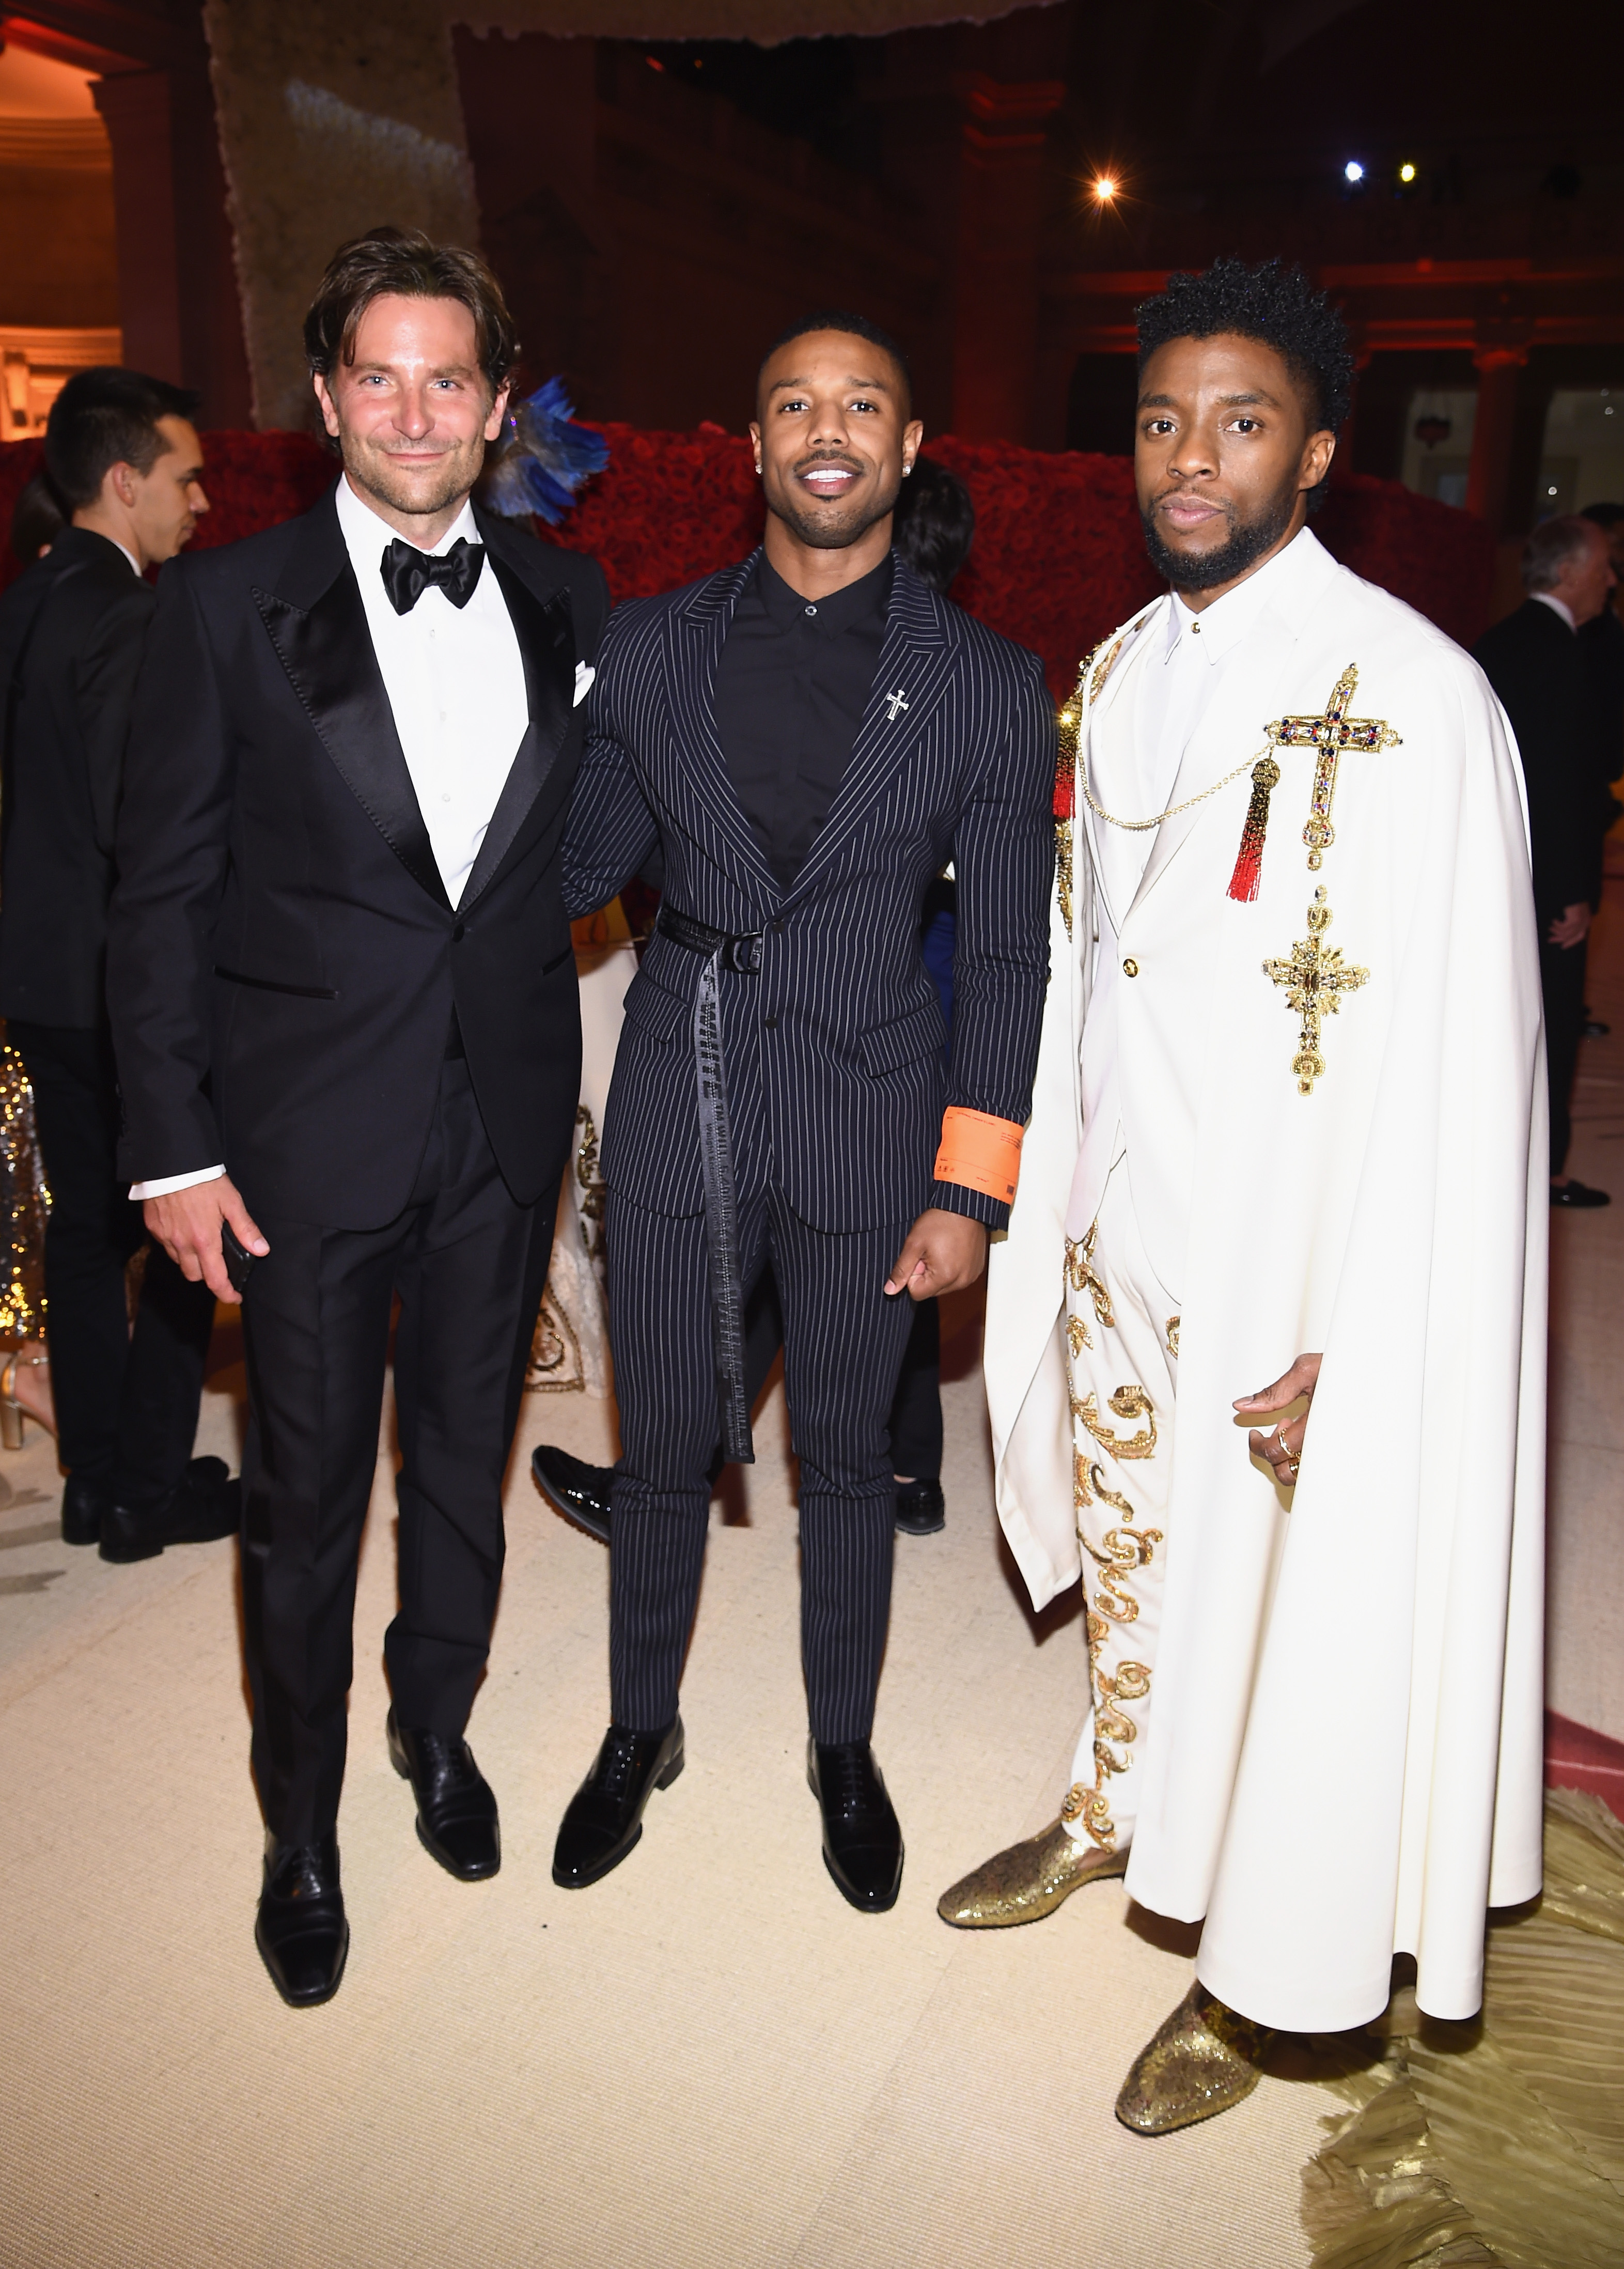 Bradley Cooper, Michael B. Jordan, and Chadwick Boseman attend the Heavenly Bodies: Fashion & The Catholic Imagination Costume Institute Gala at The Metropolitan Museum of Art on May 7, 2018 in New York City.